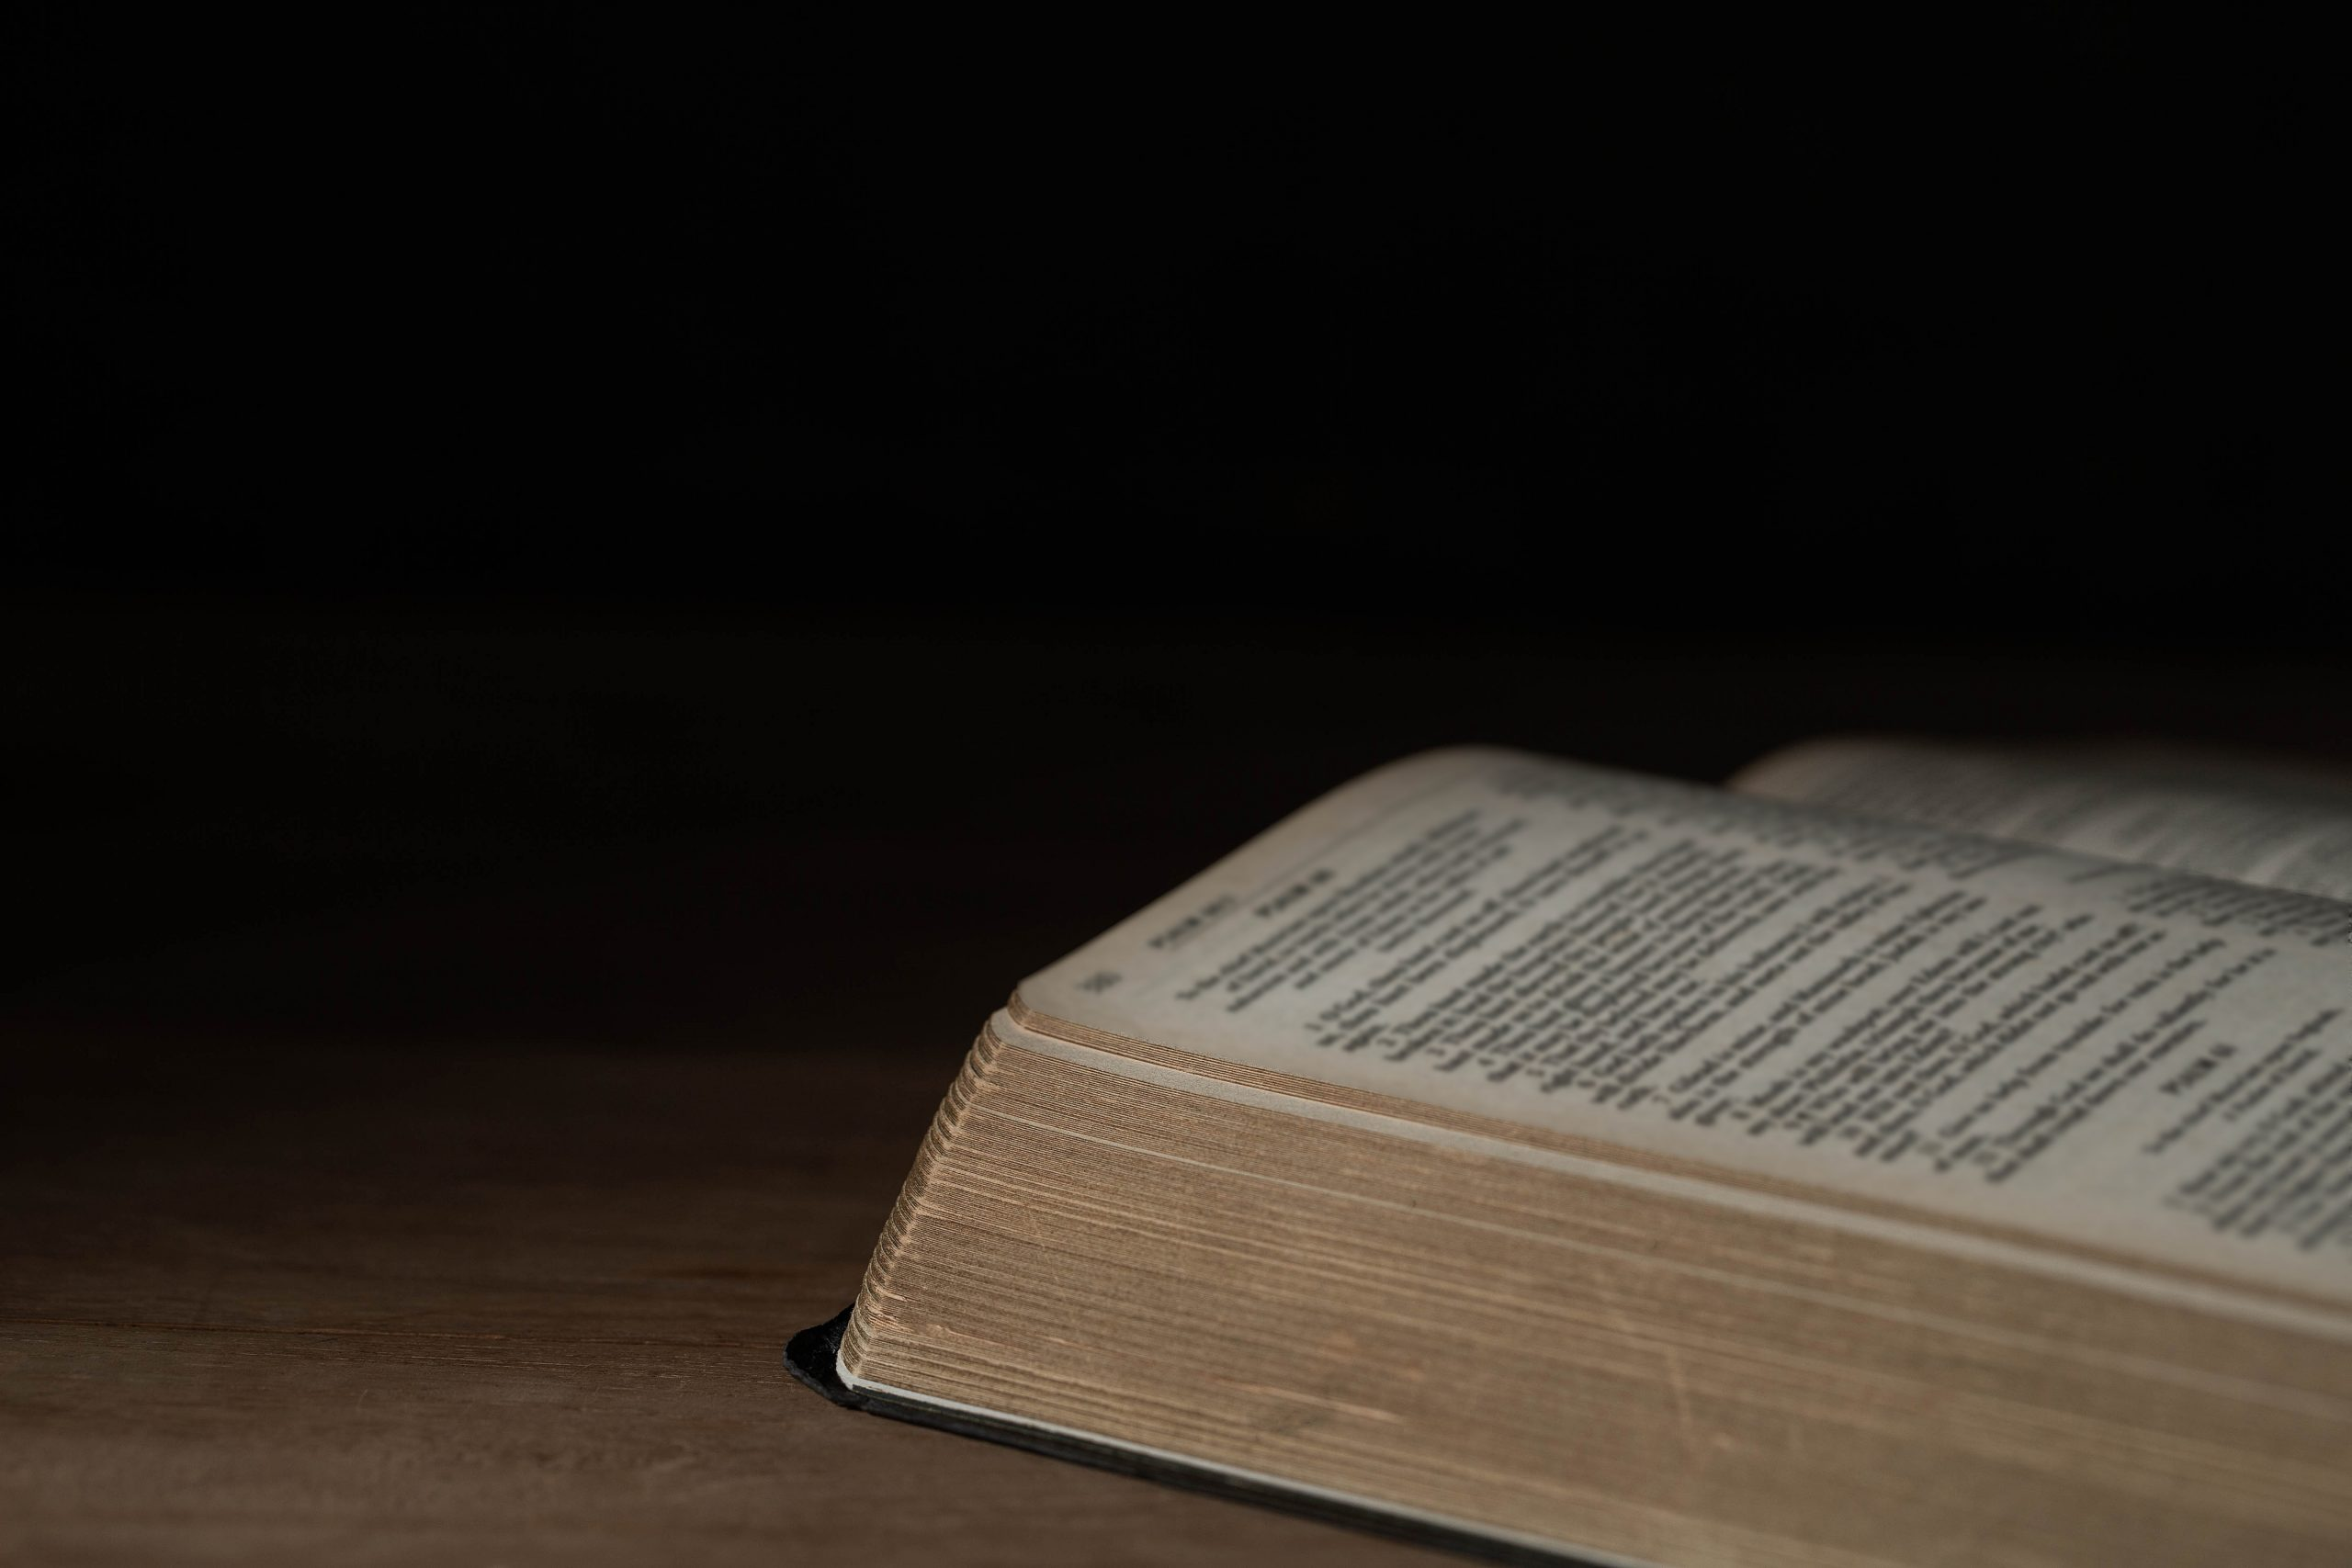 Zion Illinois Lakeview Church Bible on wooden background